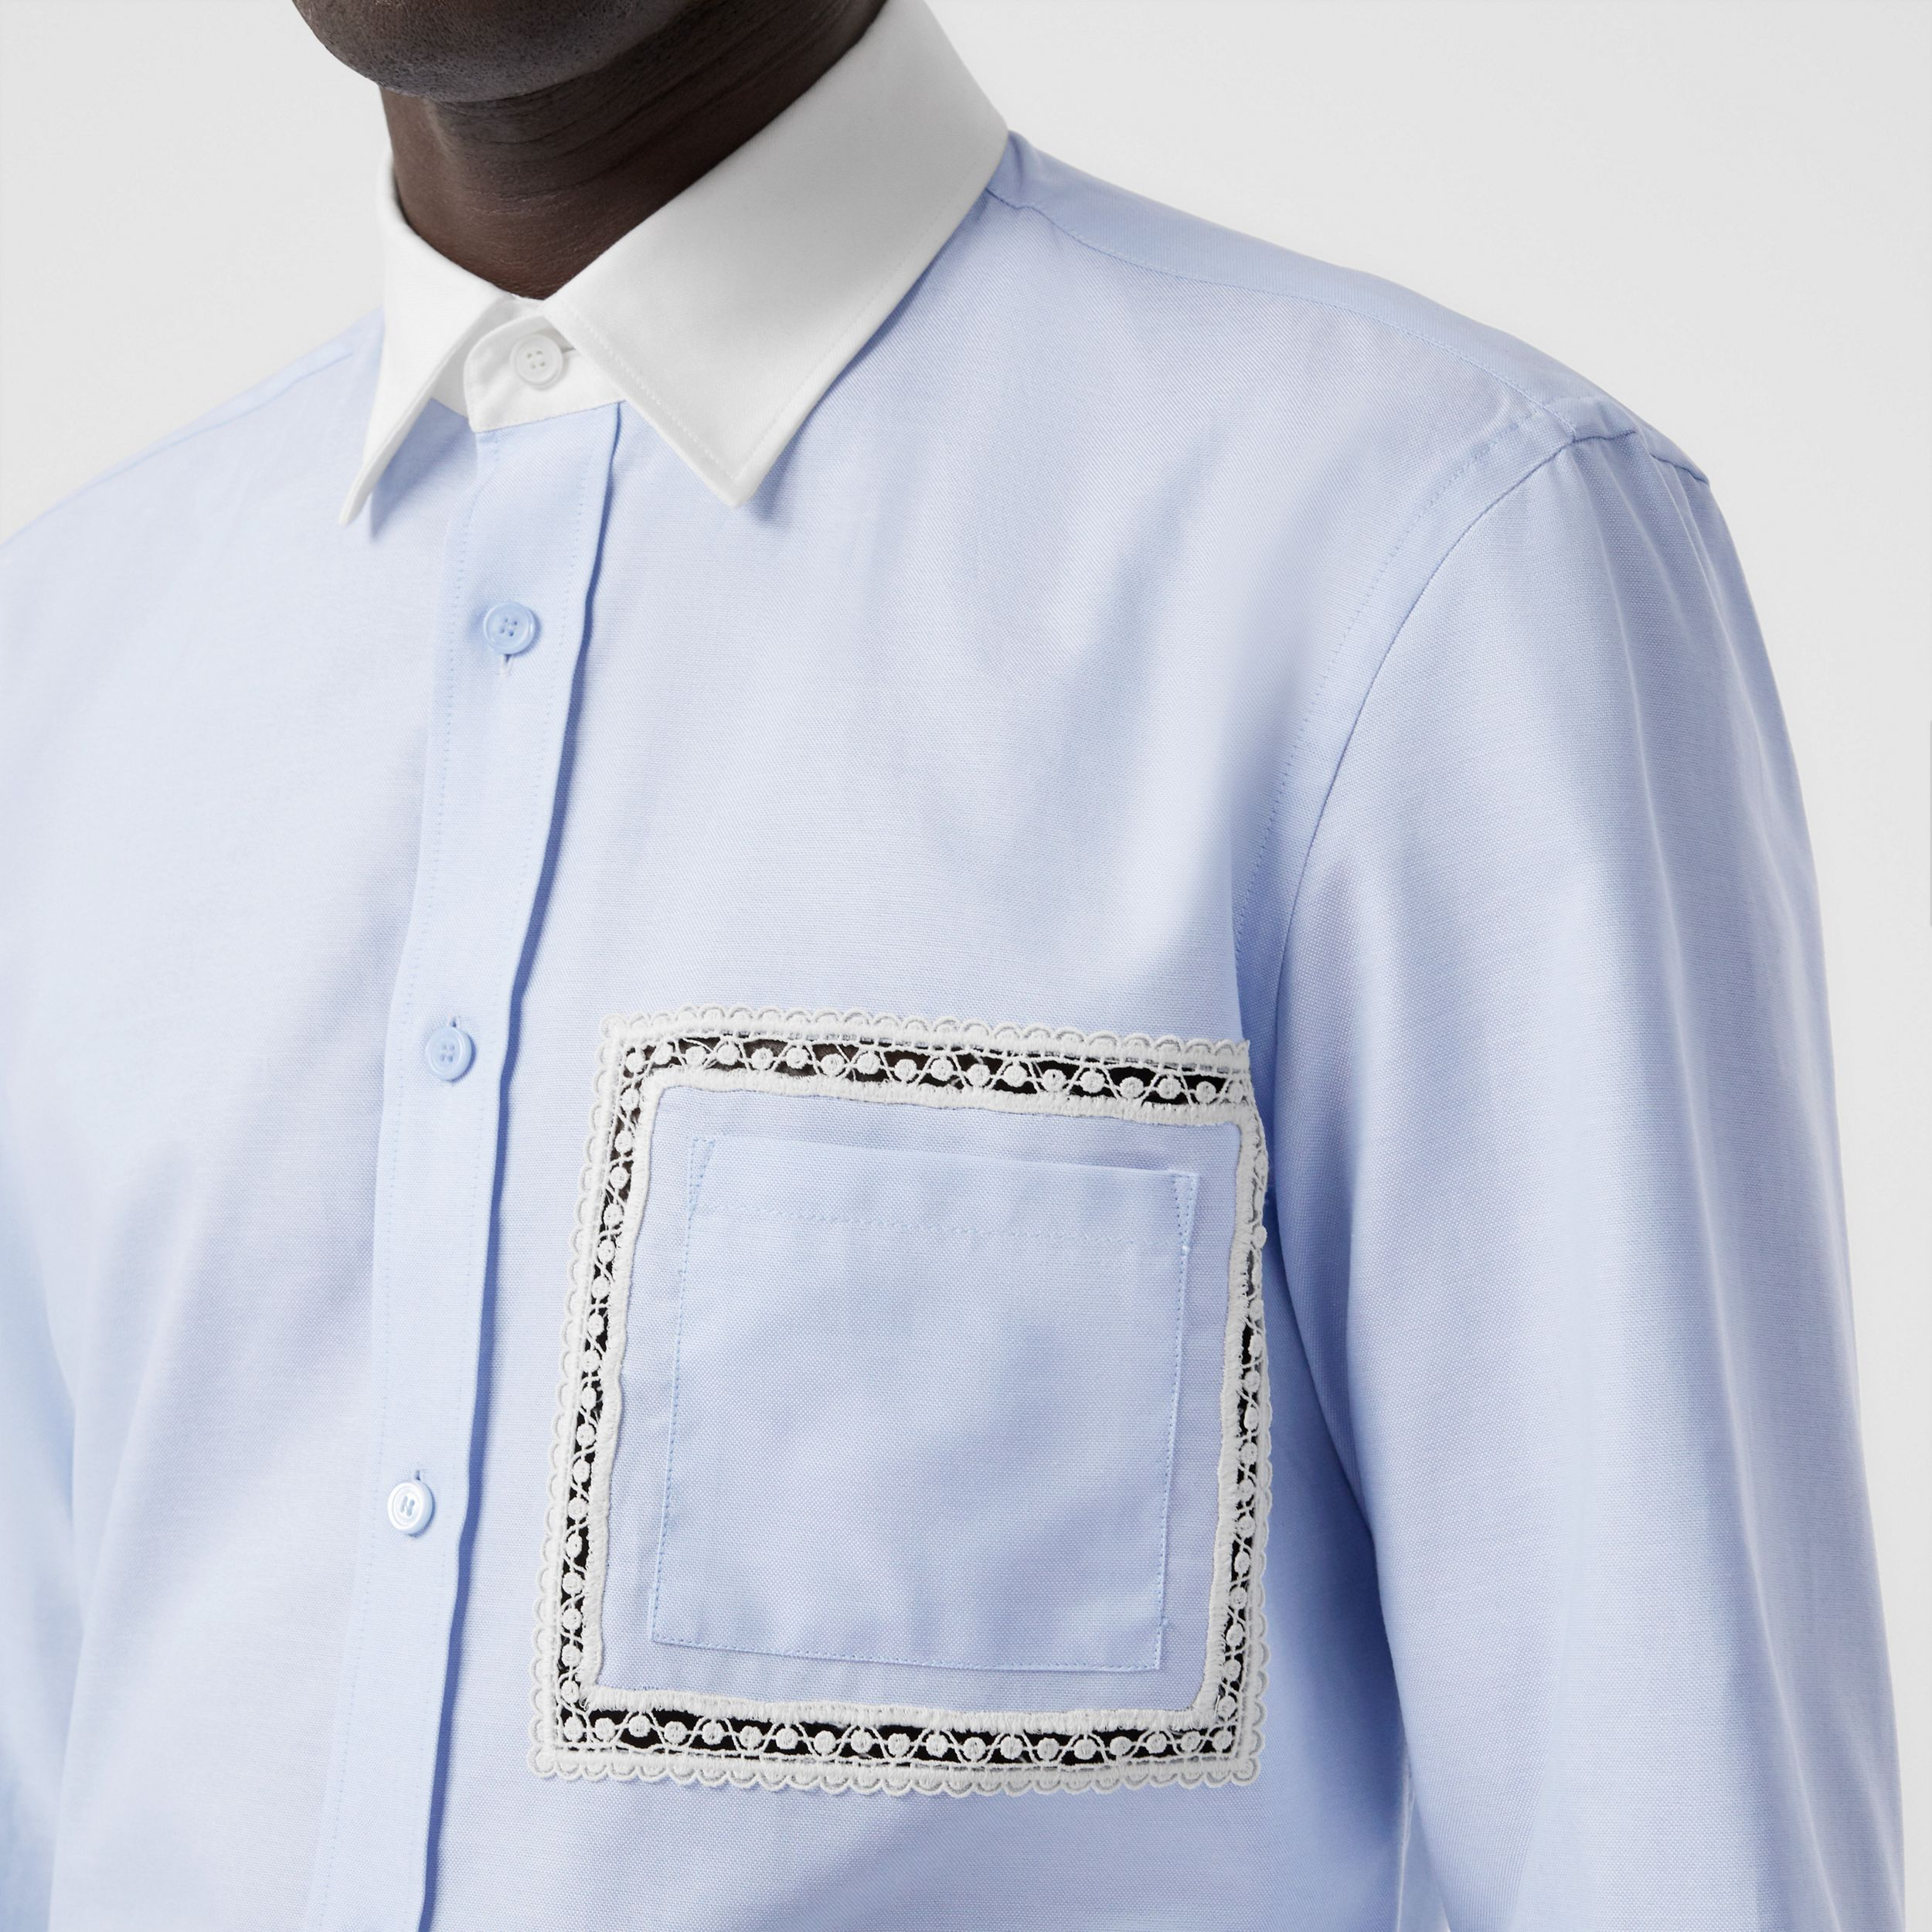 Classic Fit Lace Detail Cotton Oxford Shirt in Pale Blue - Men | Burberry - 2